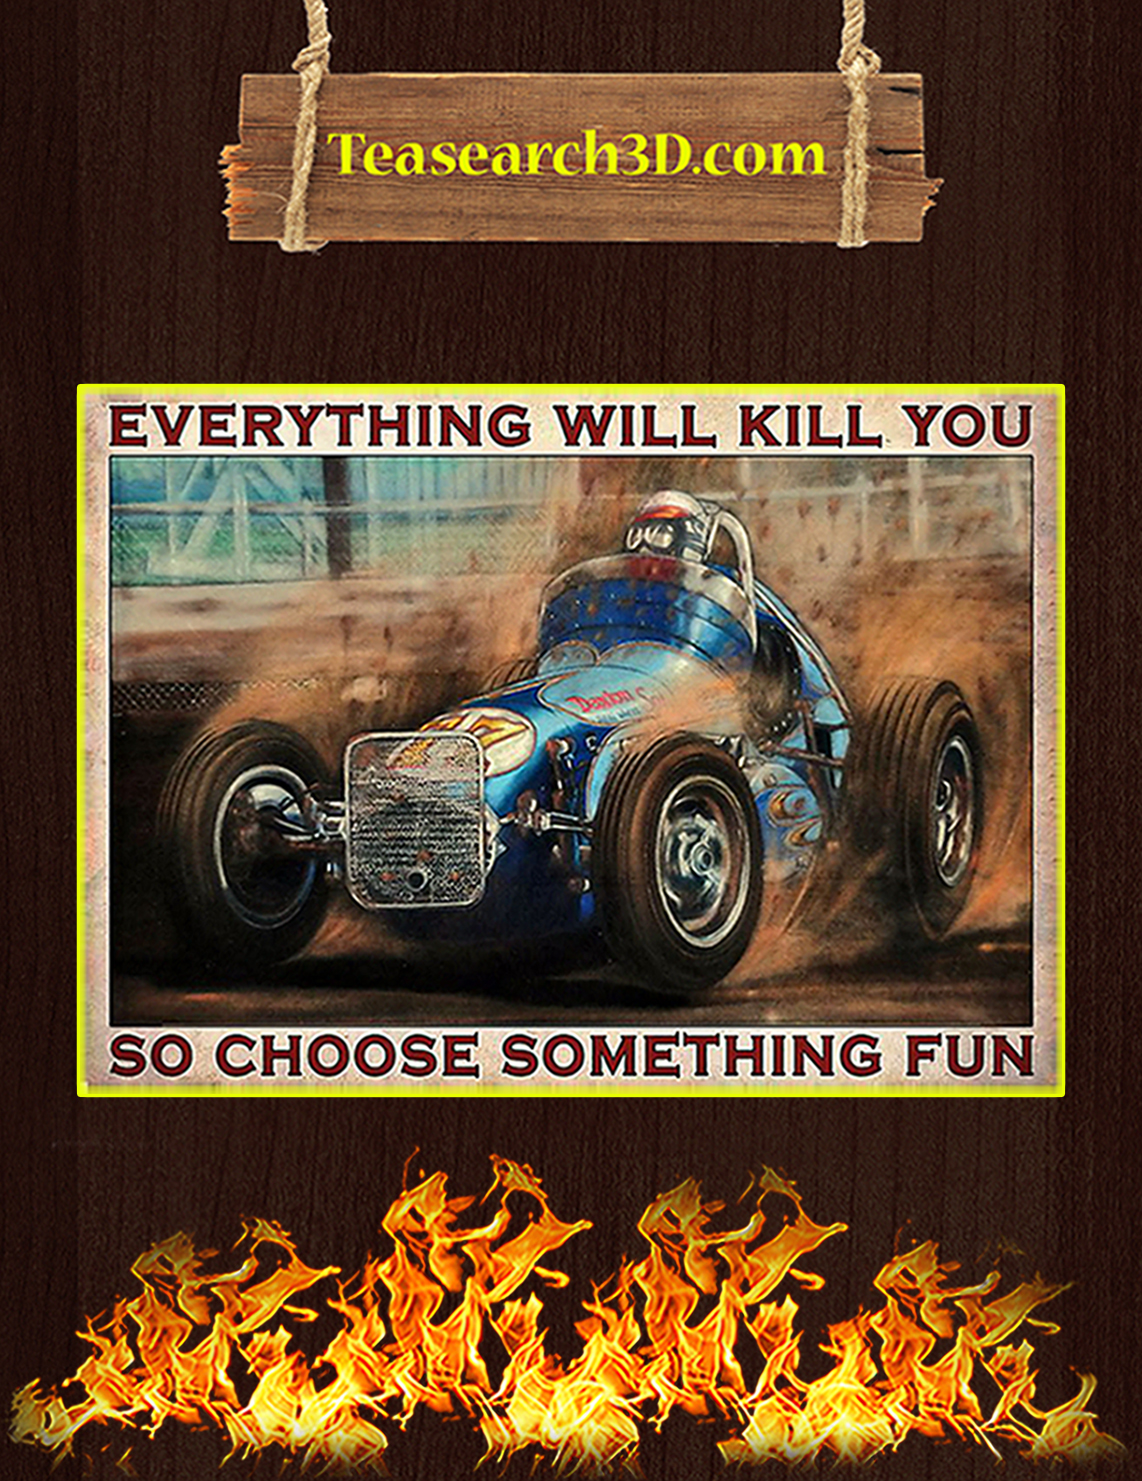 Dirt track racing everything will kill you so choose something fun poster A3